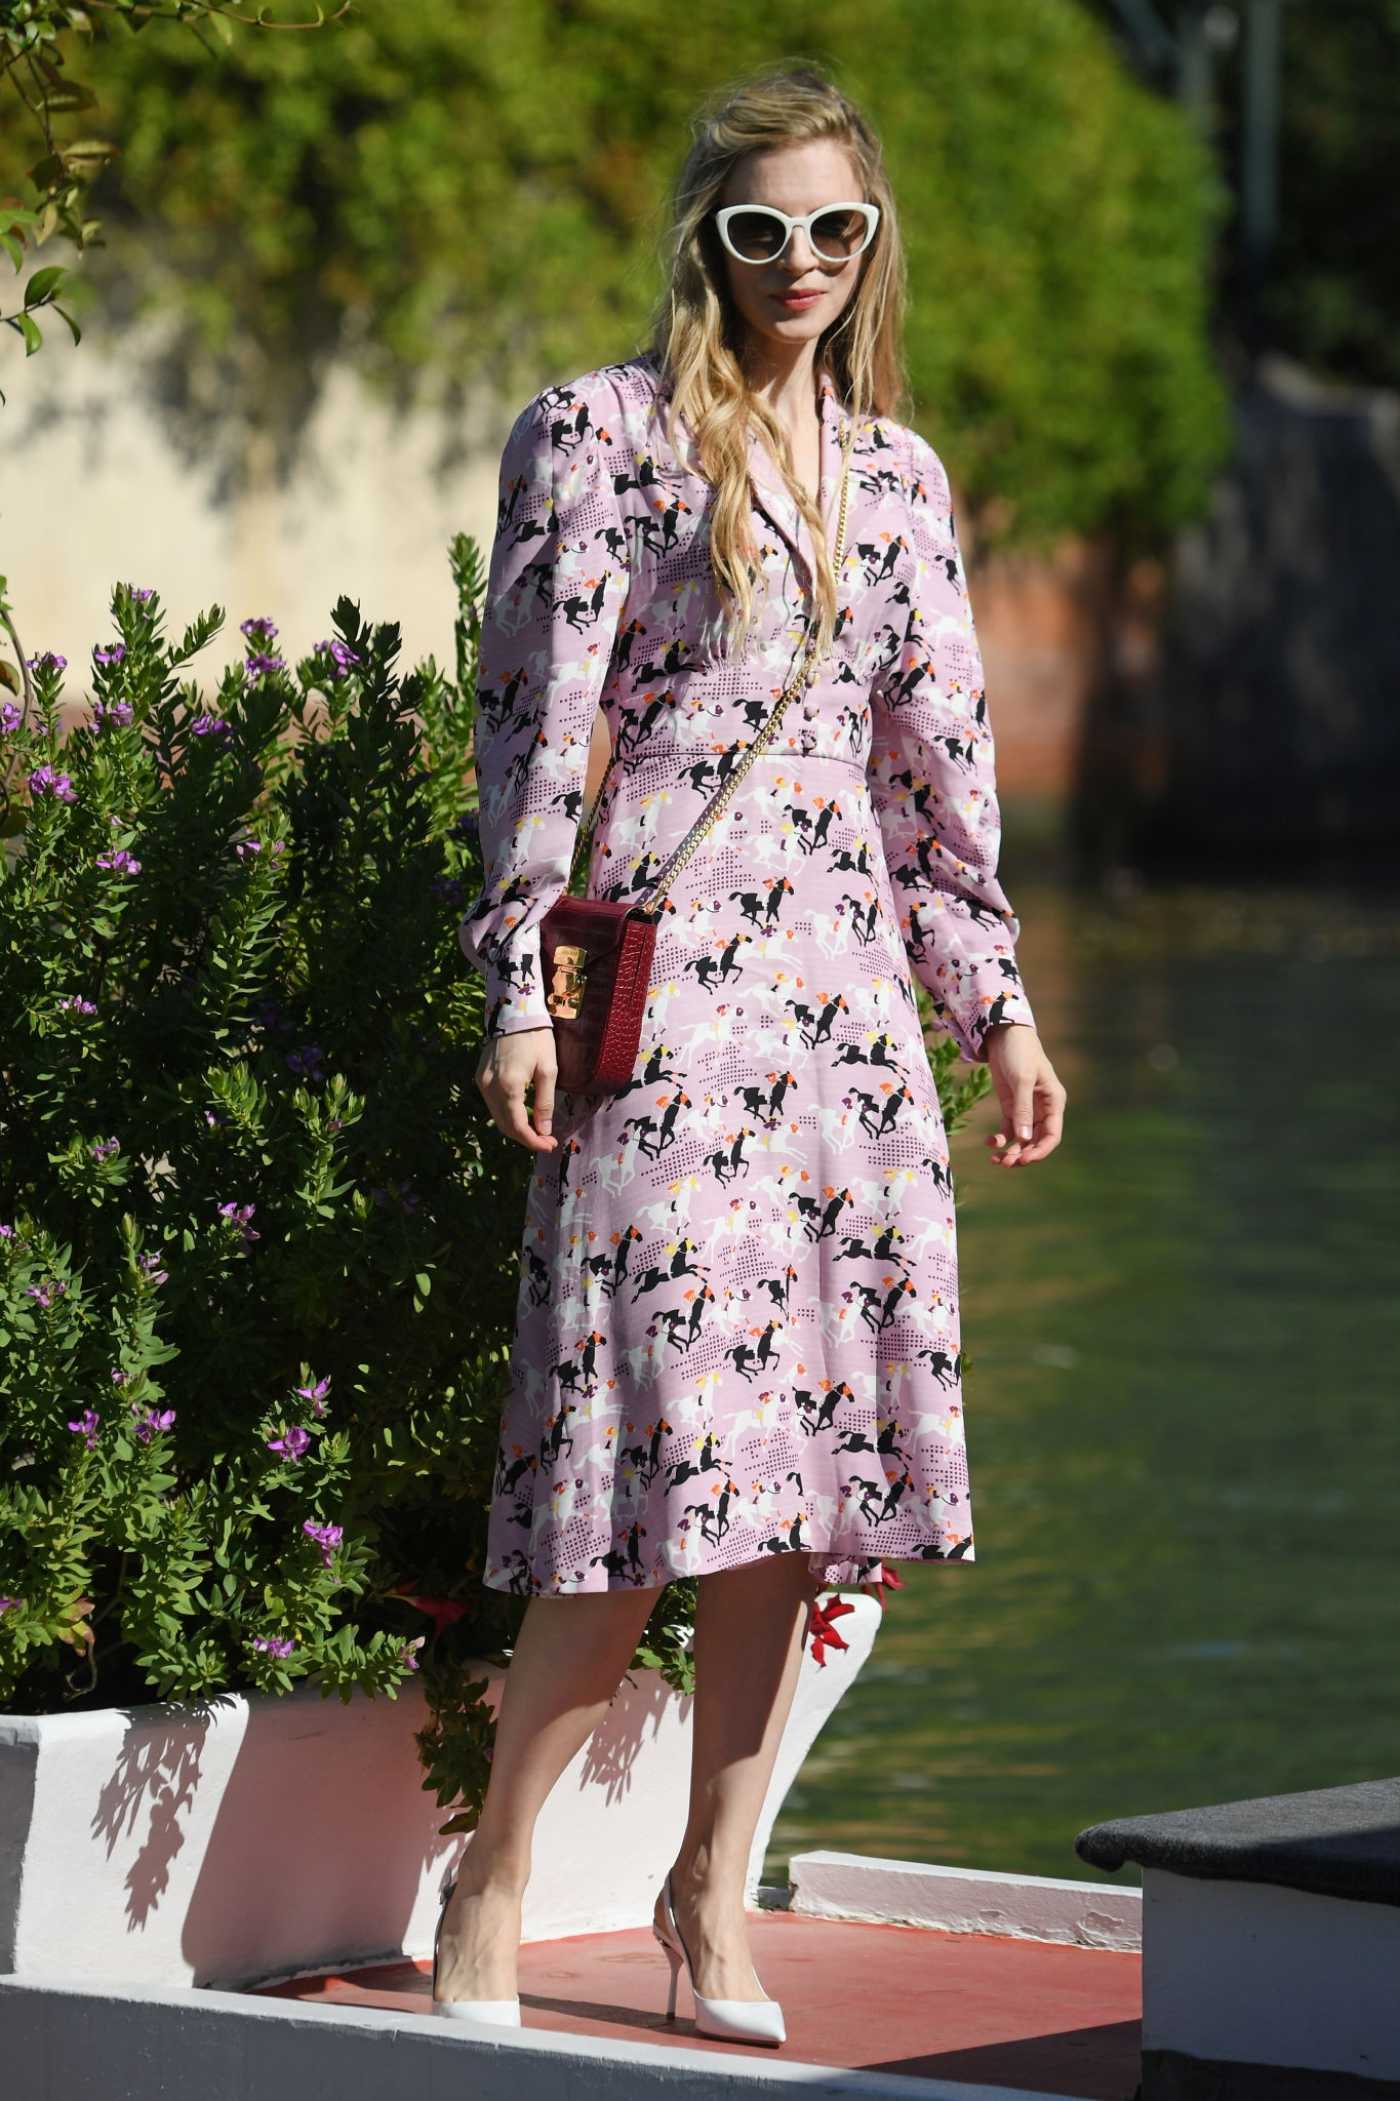 Brit Marling in a Purple Dress Arrives at the 76th Venice Film Festival in Venice 09/03/2019